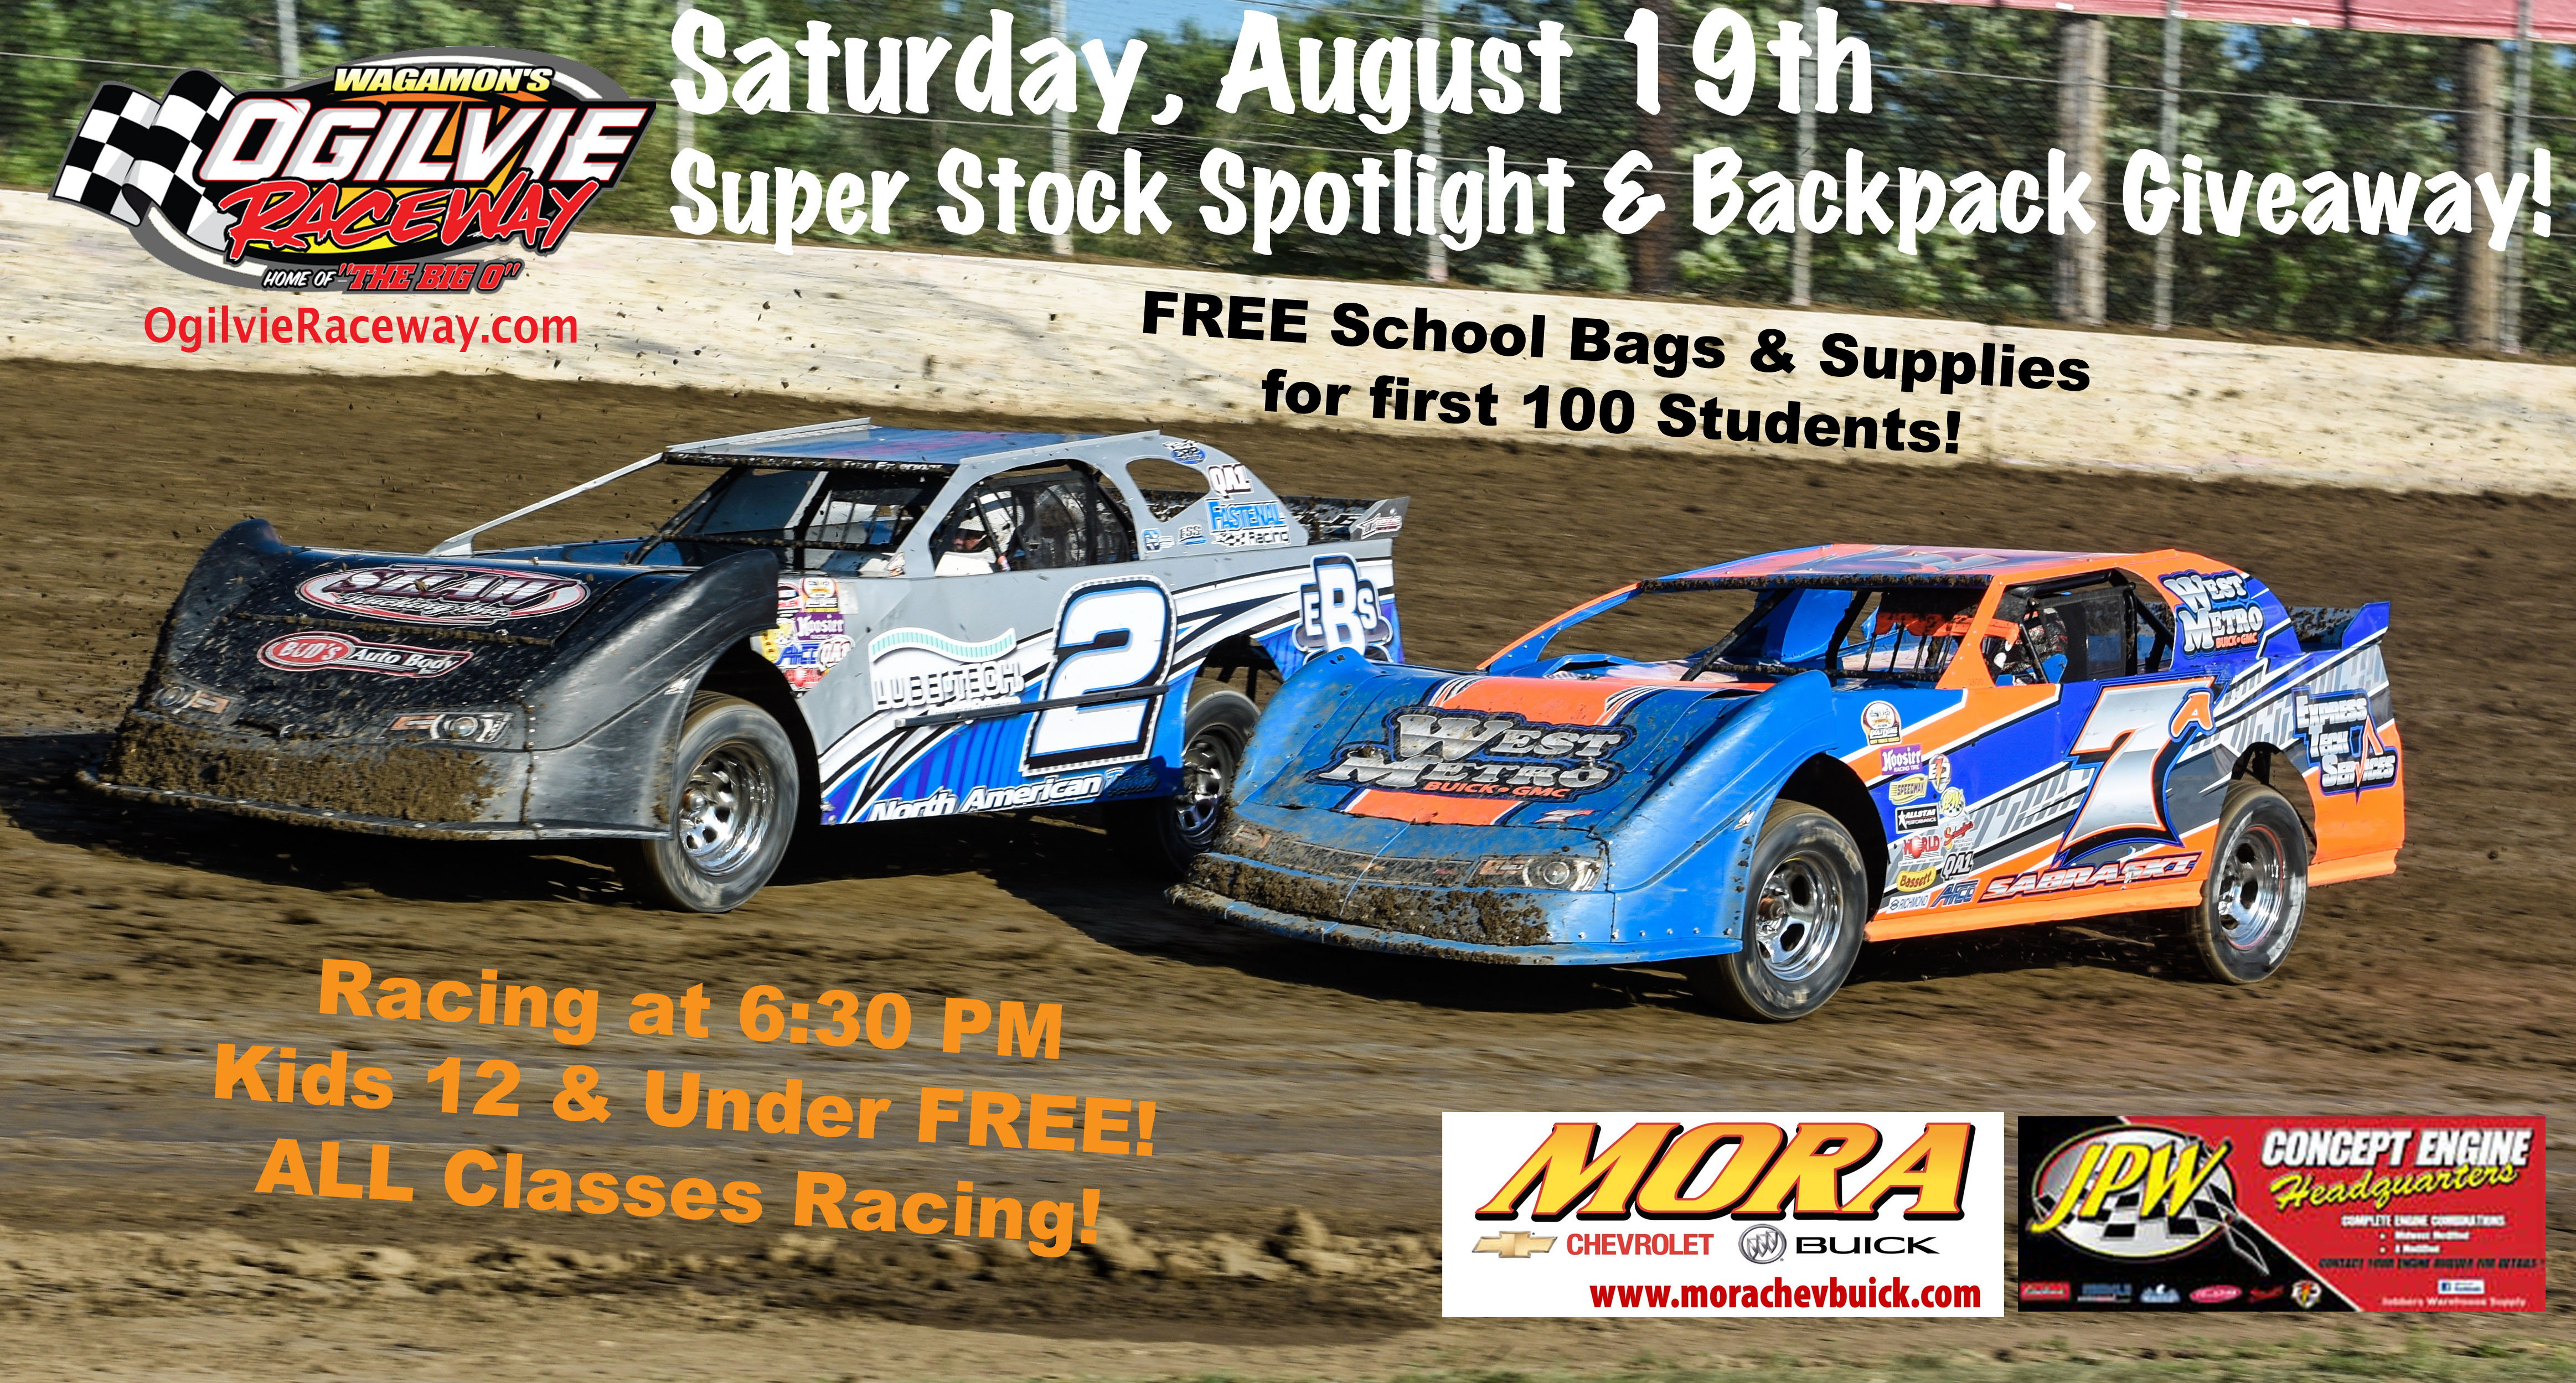 Backpack Giveaway & Spotlight on the Super Stocks this Saturday, August 19th!